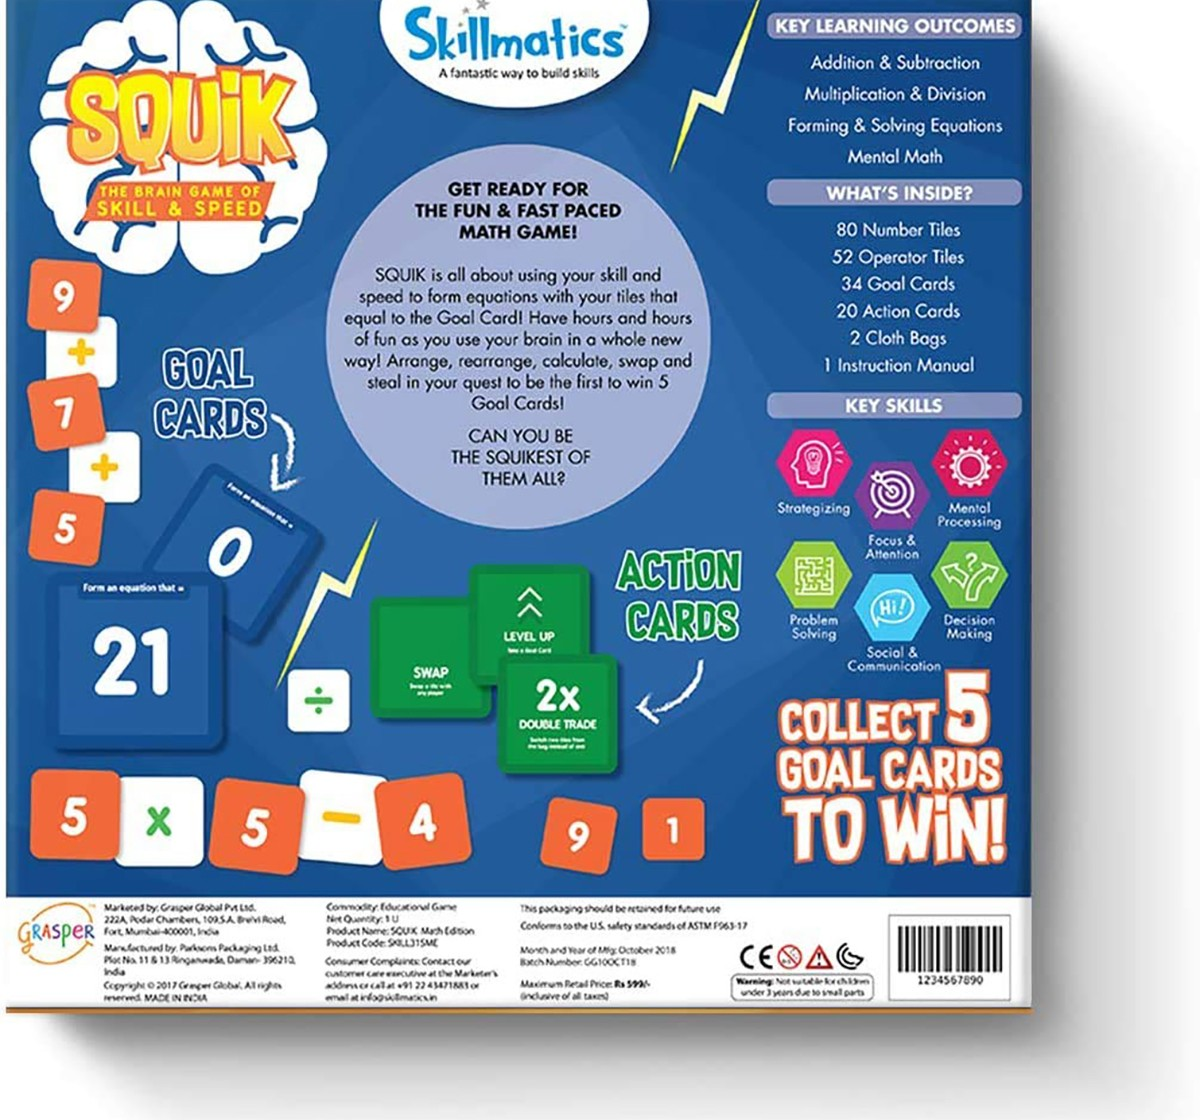 Skillmatics Squik Math – A Game Of Mental Math From Skillmatics   Skill Based Learning And Practice For Addition, Multiplication, Division, Subtraction Games for Kids age 6Y+